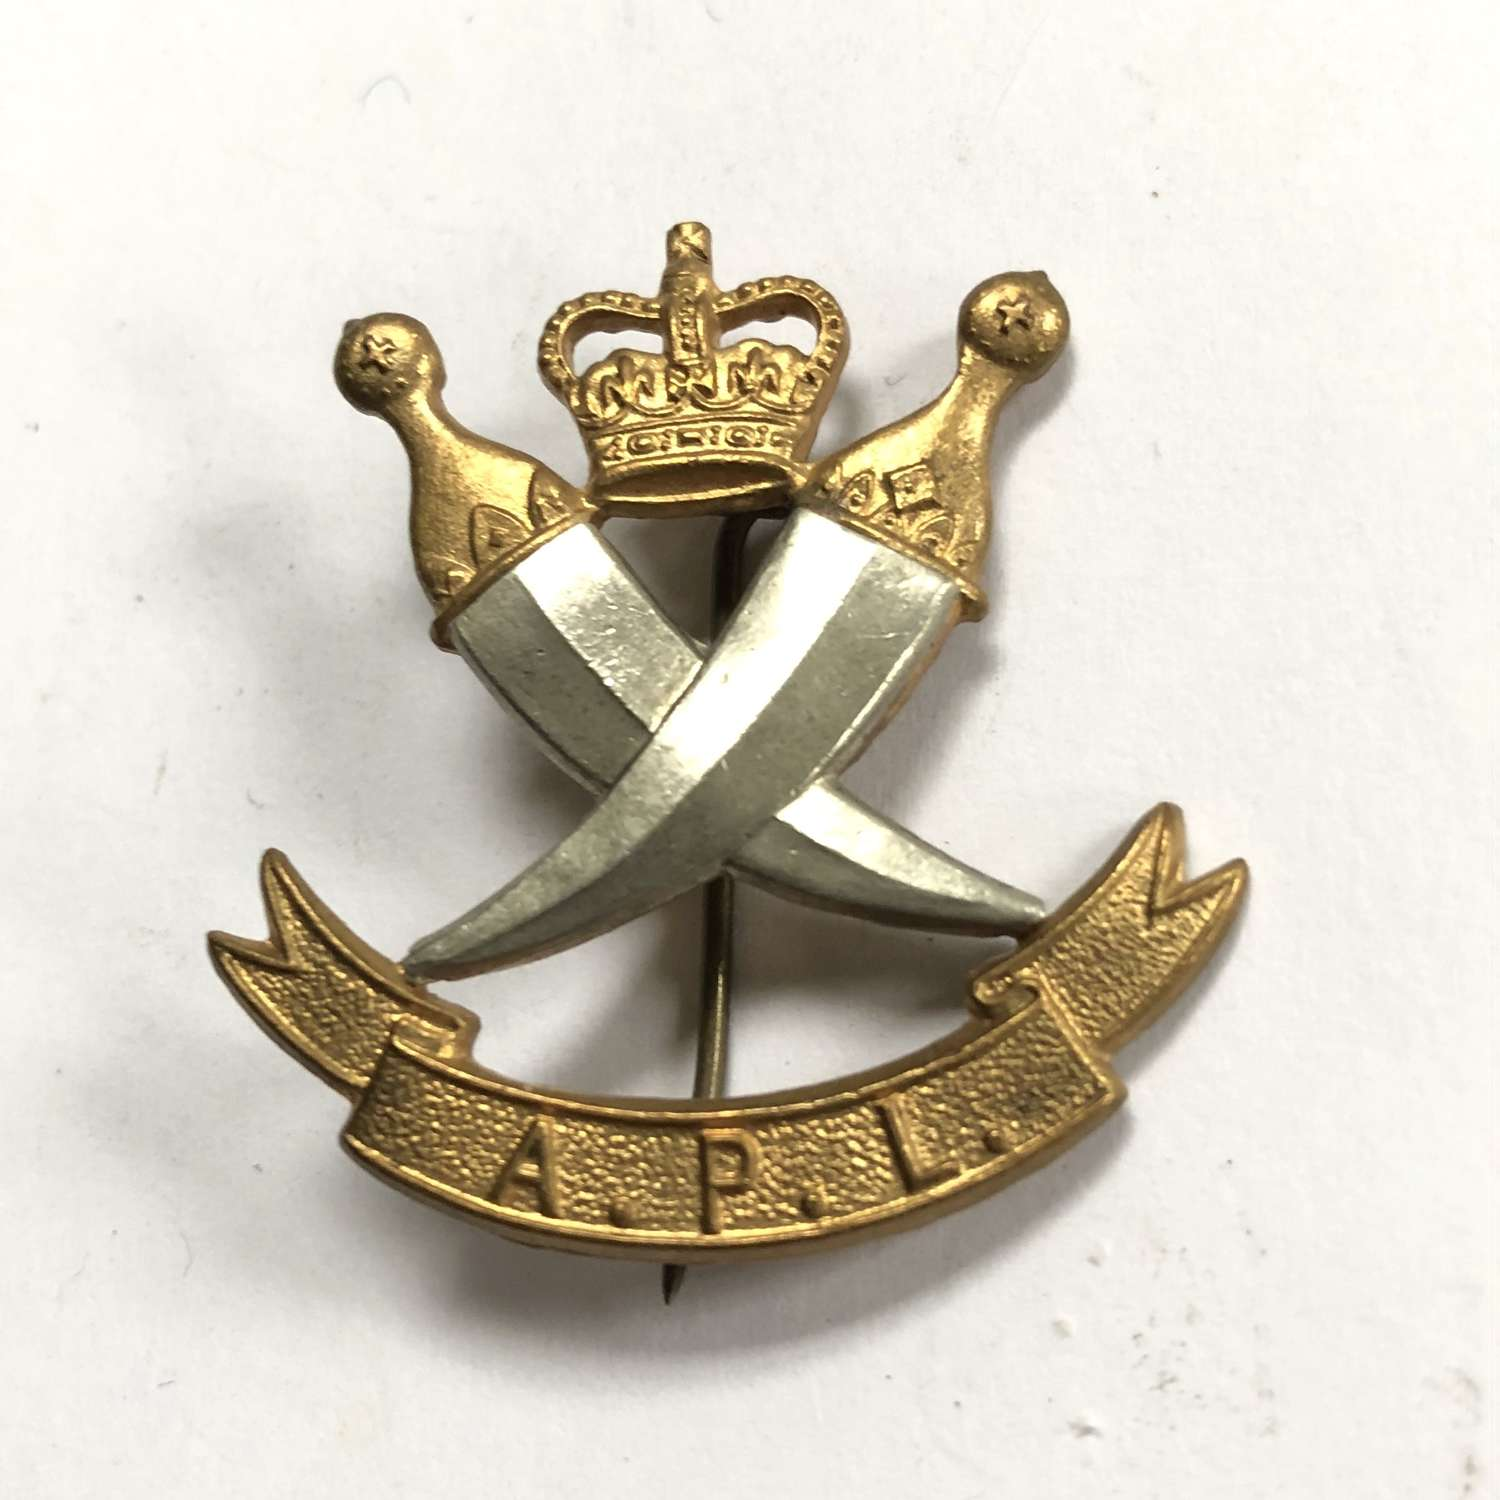 Aden Protectorate Levies Officer's head-dress badge